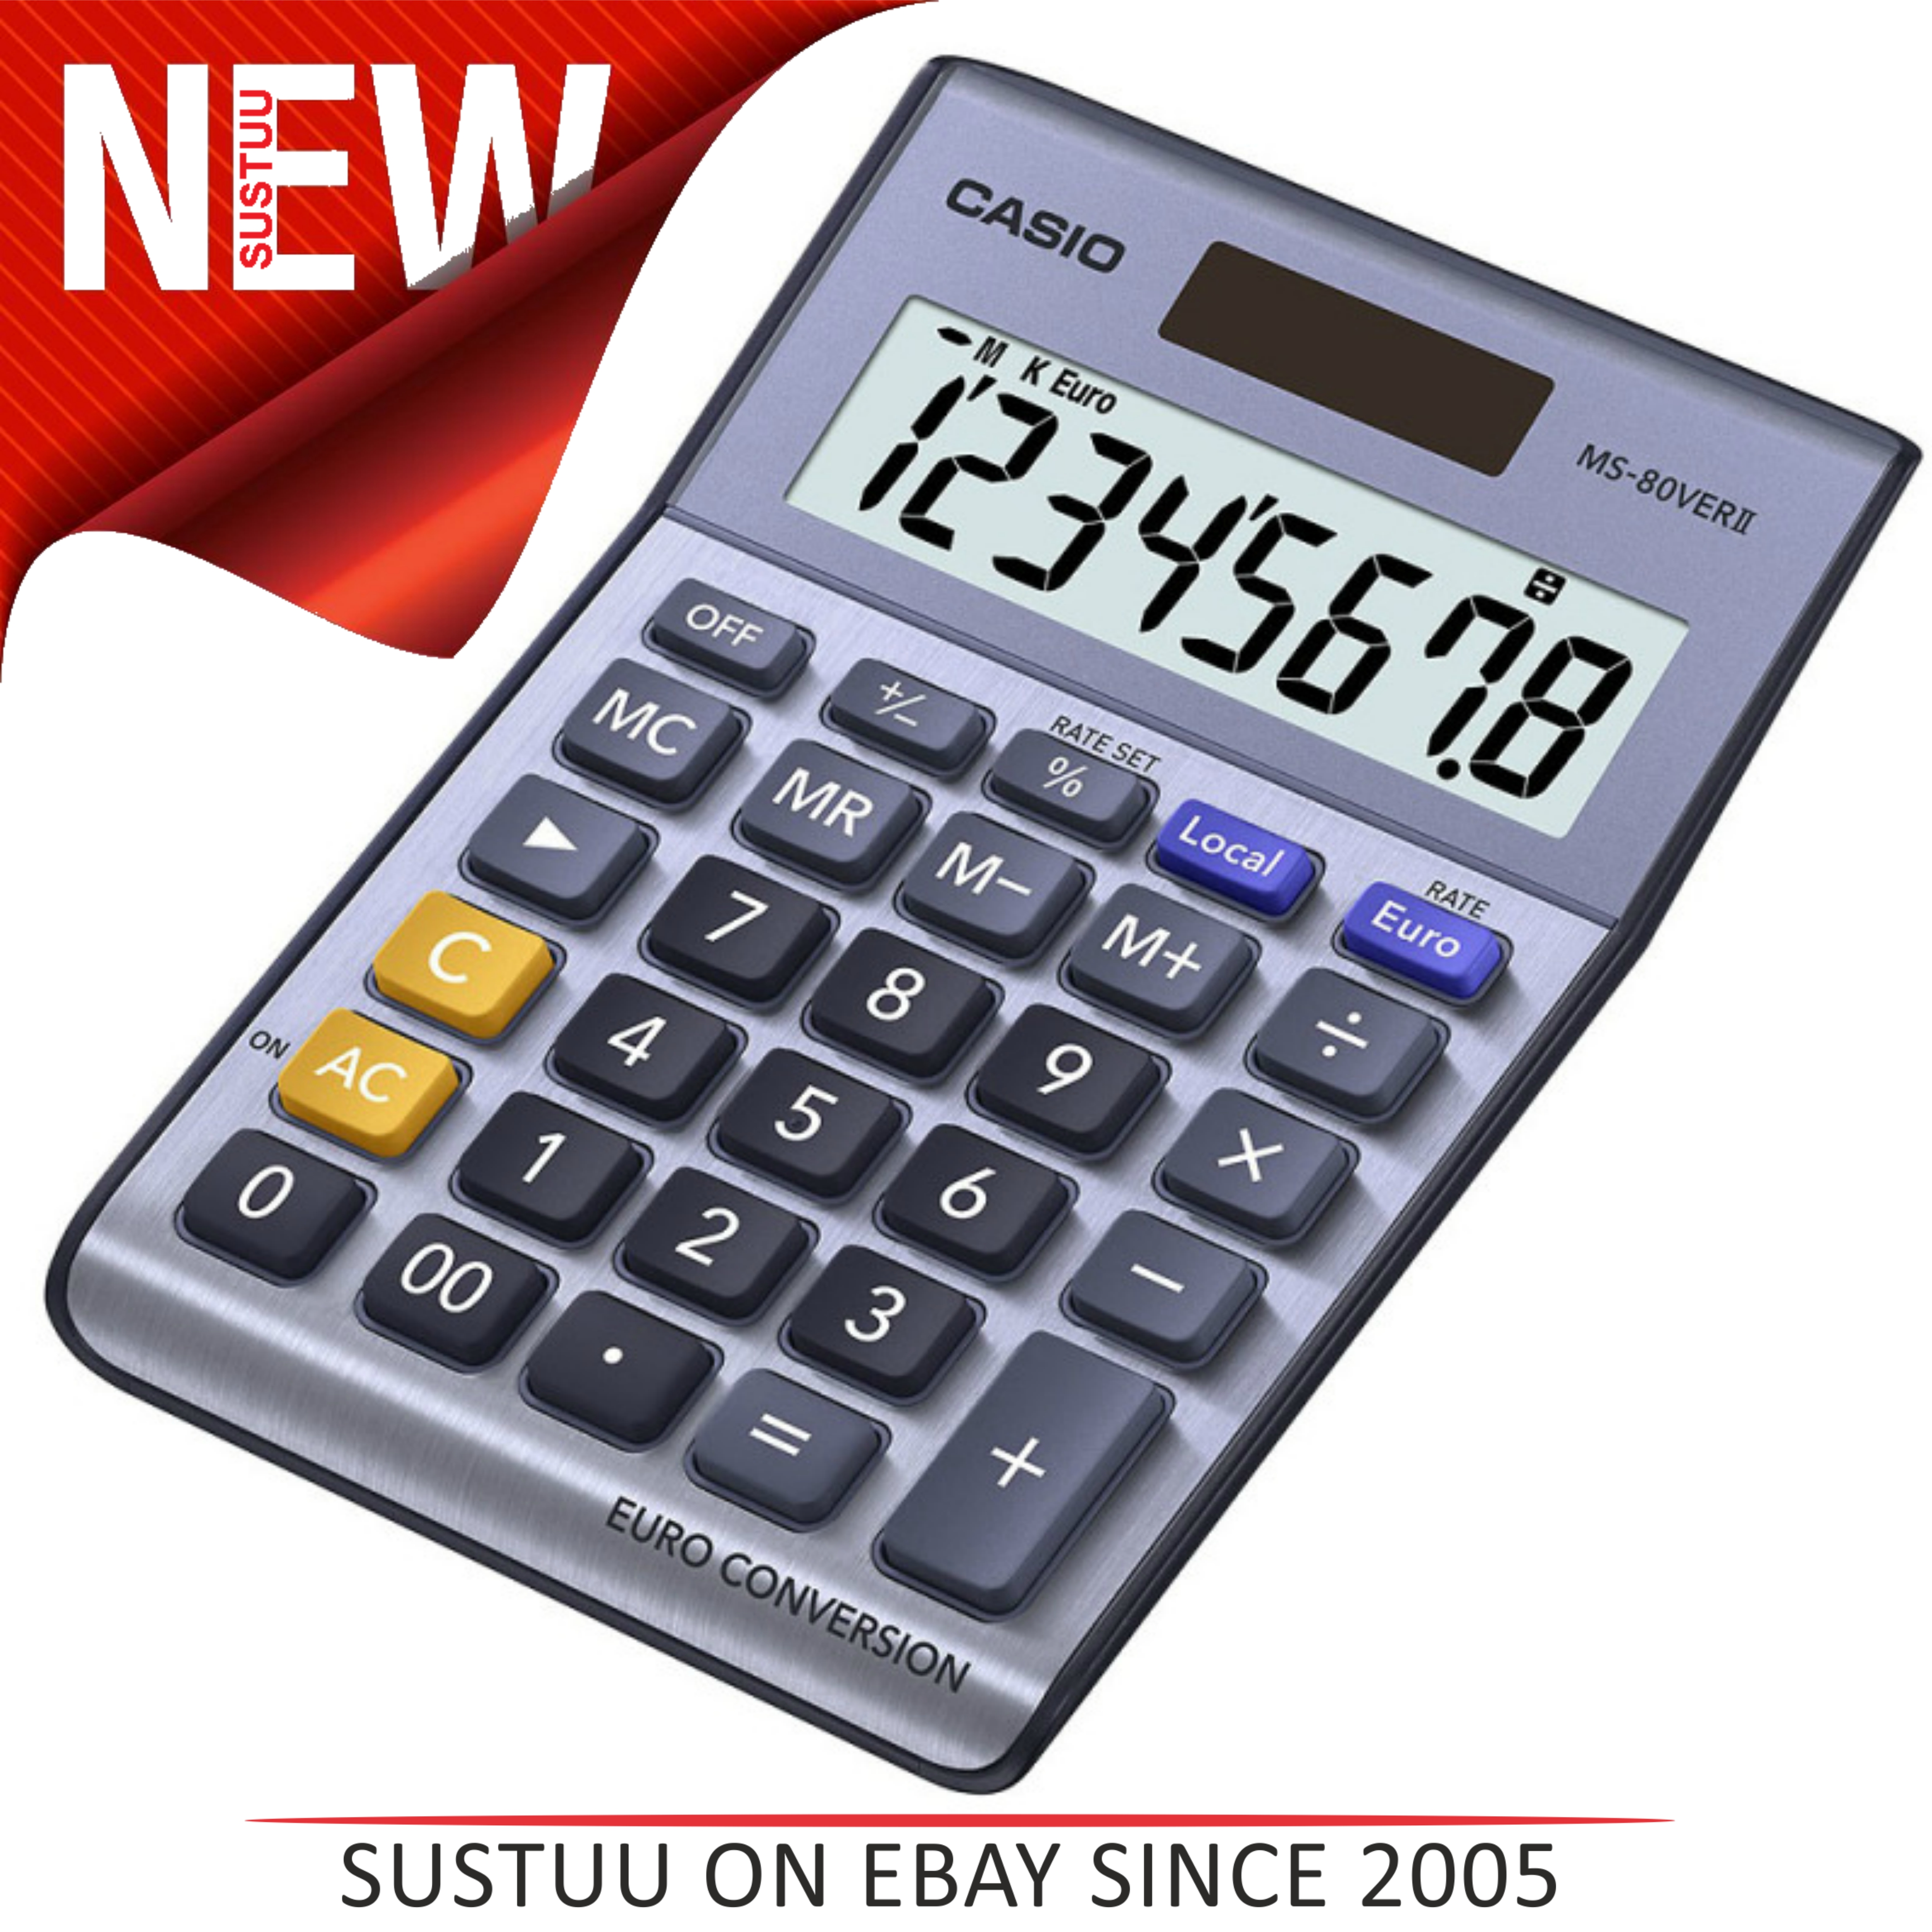 Casio Desk Calculator with Euro Conversion | Home-Office-Business Use | MS80VERII